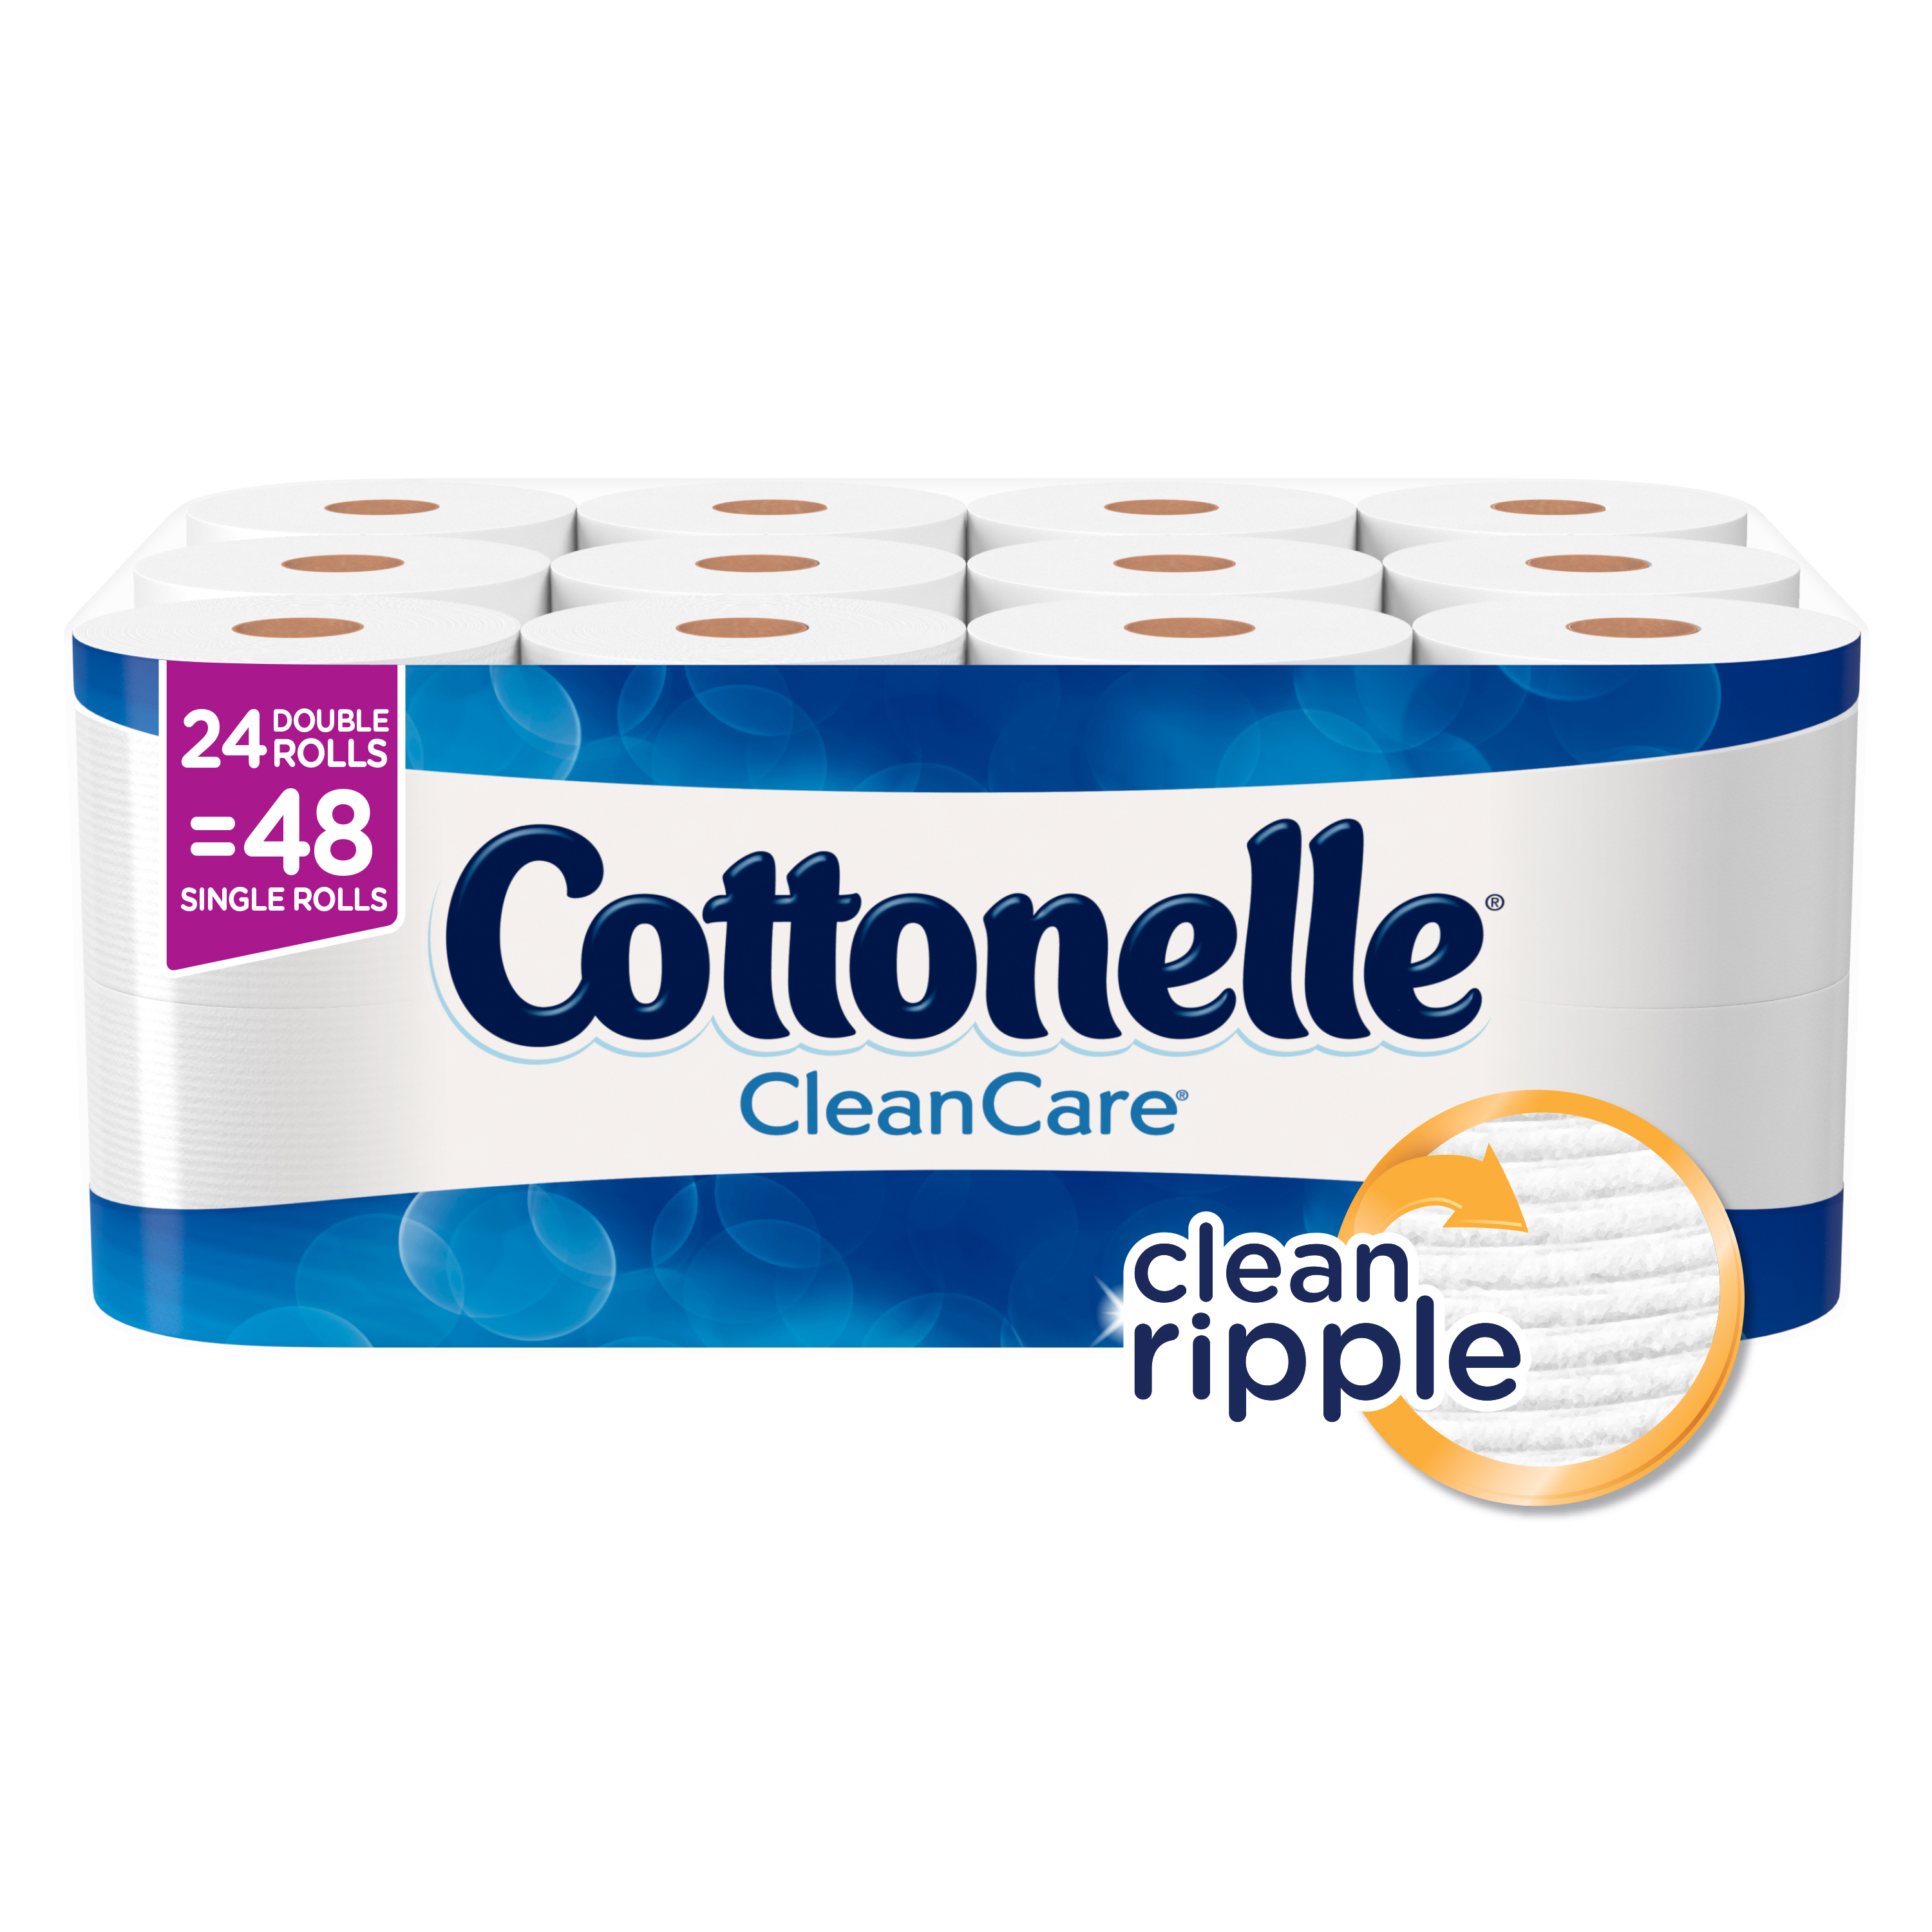 Cottonelle Clean Care Toilet Paper, 24 Double Rolls